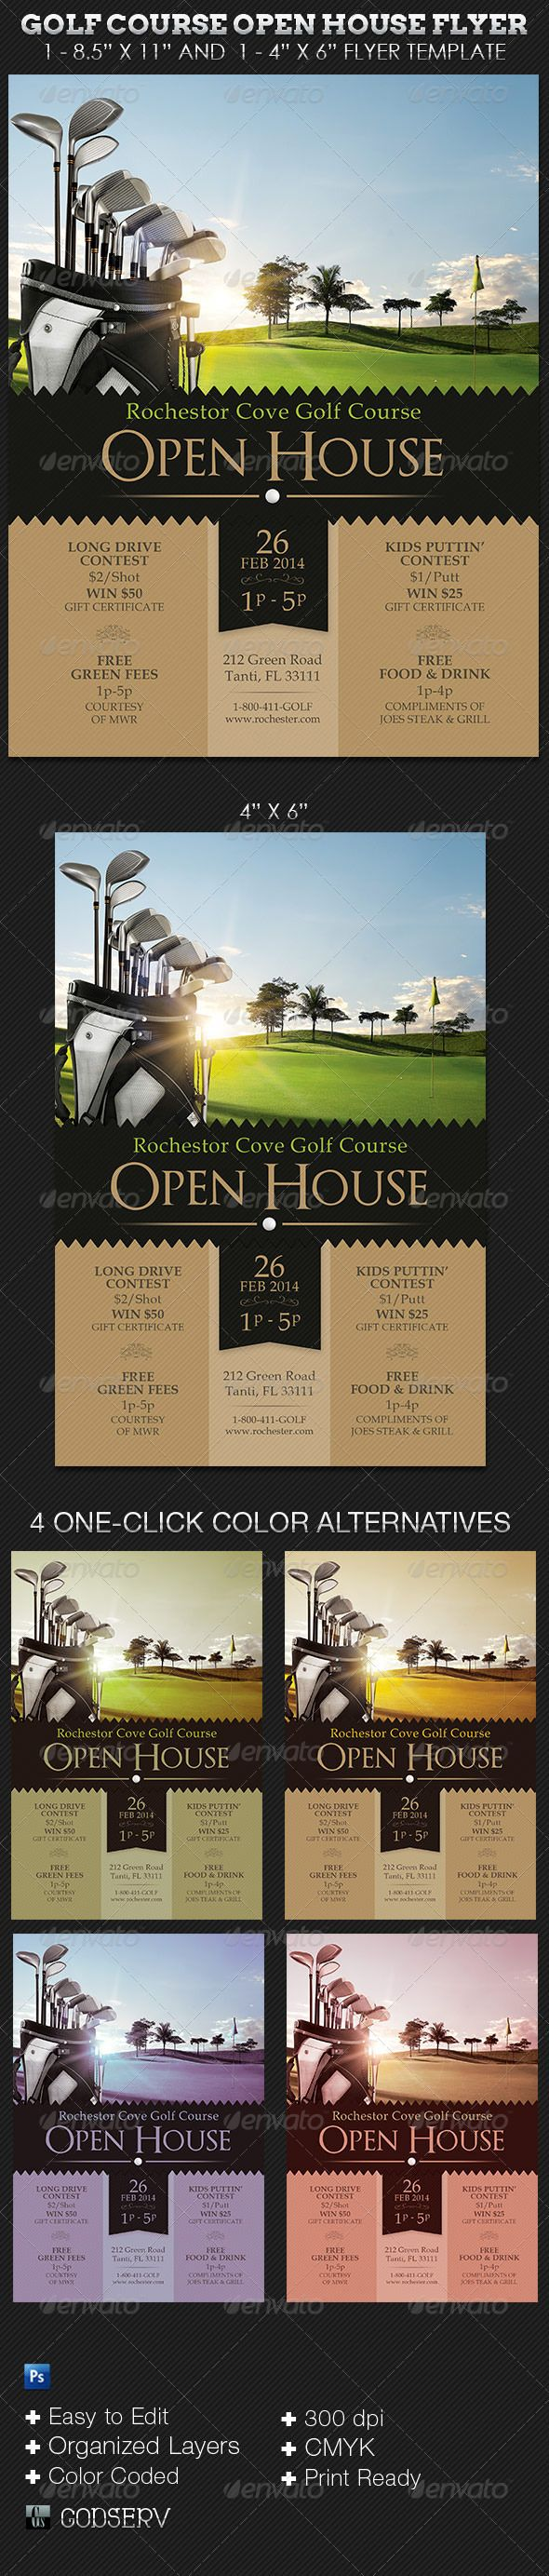 golf course open house flyer templates golf party sports clubs and flyer template. Black Bedroom Furniture Sets. Home Design Ideas